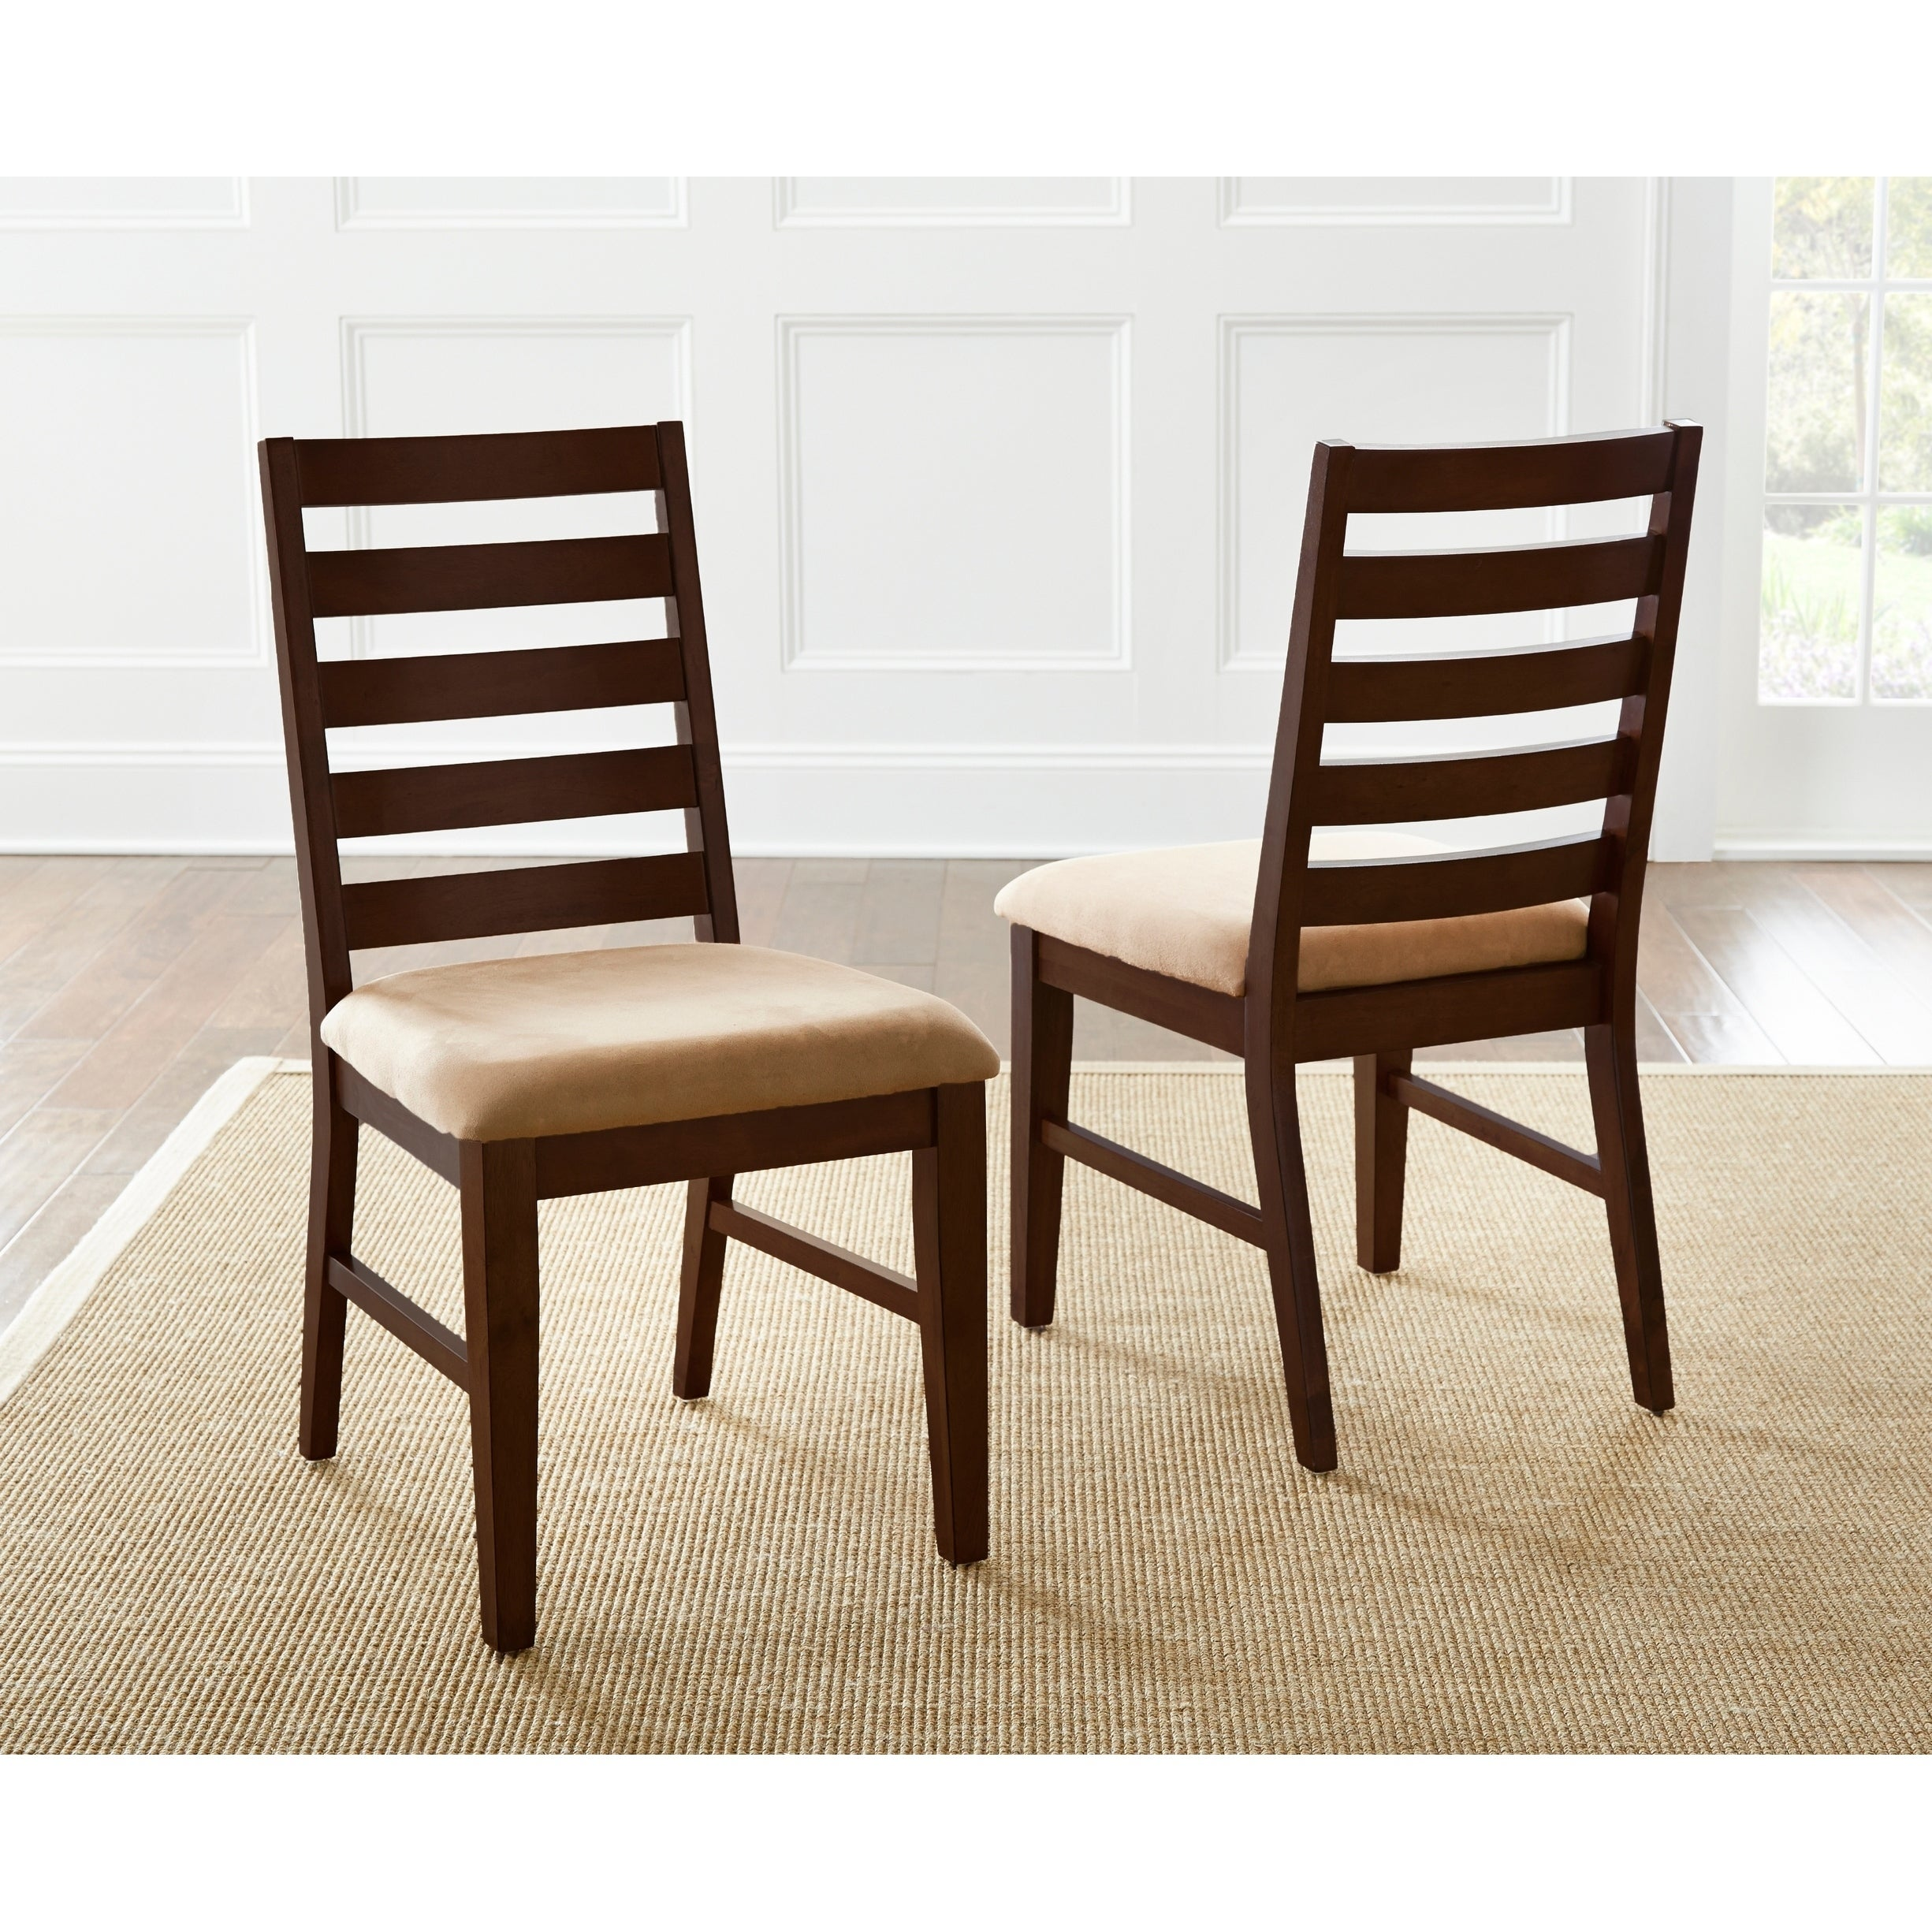 Greyson Living Emery Dining Chairs (Set of 2) (Extra Tall - Over 33 in. - Slat Back - Transitional - Dining Chairs - Suede/Microfiber/Wood - Red)